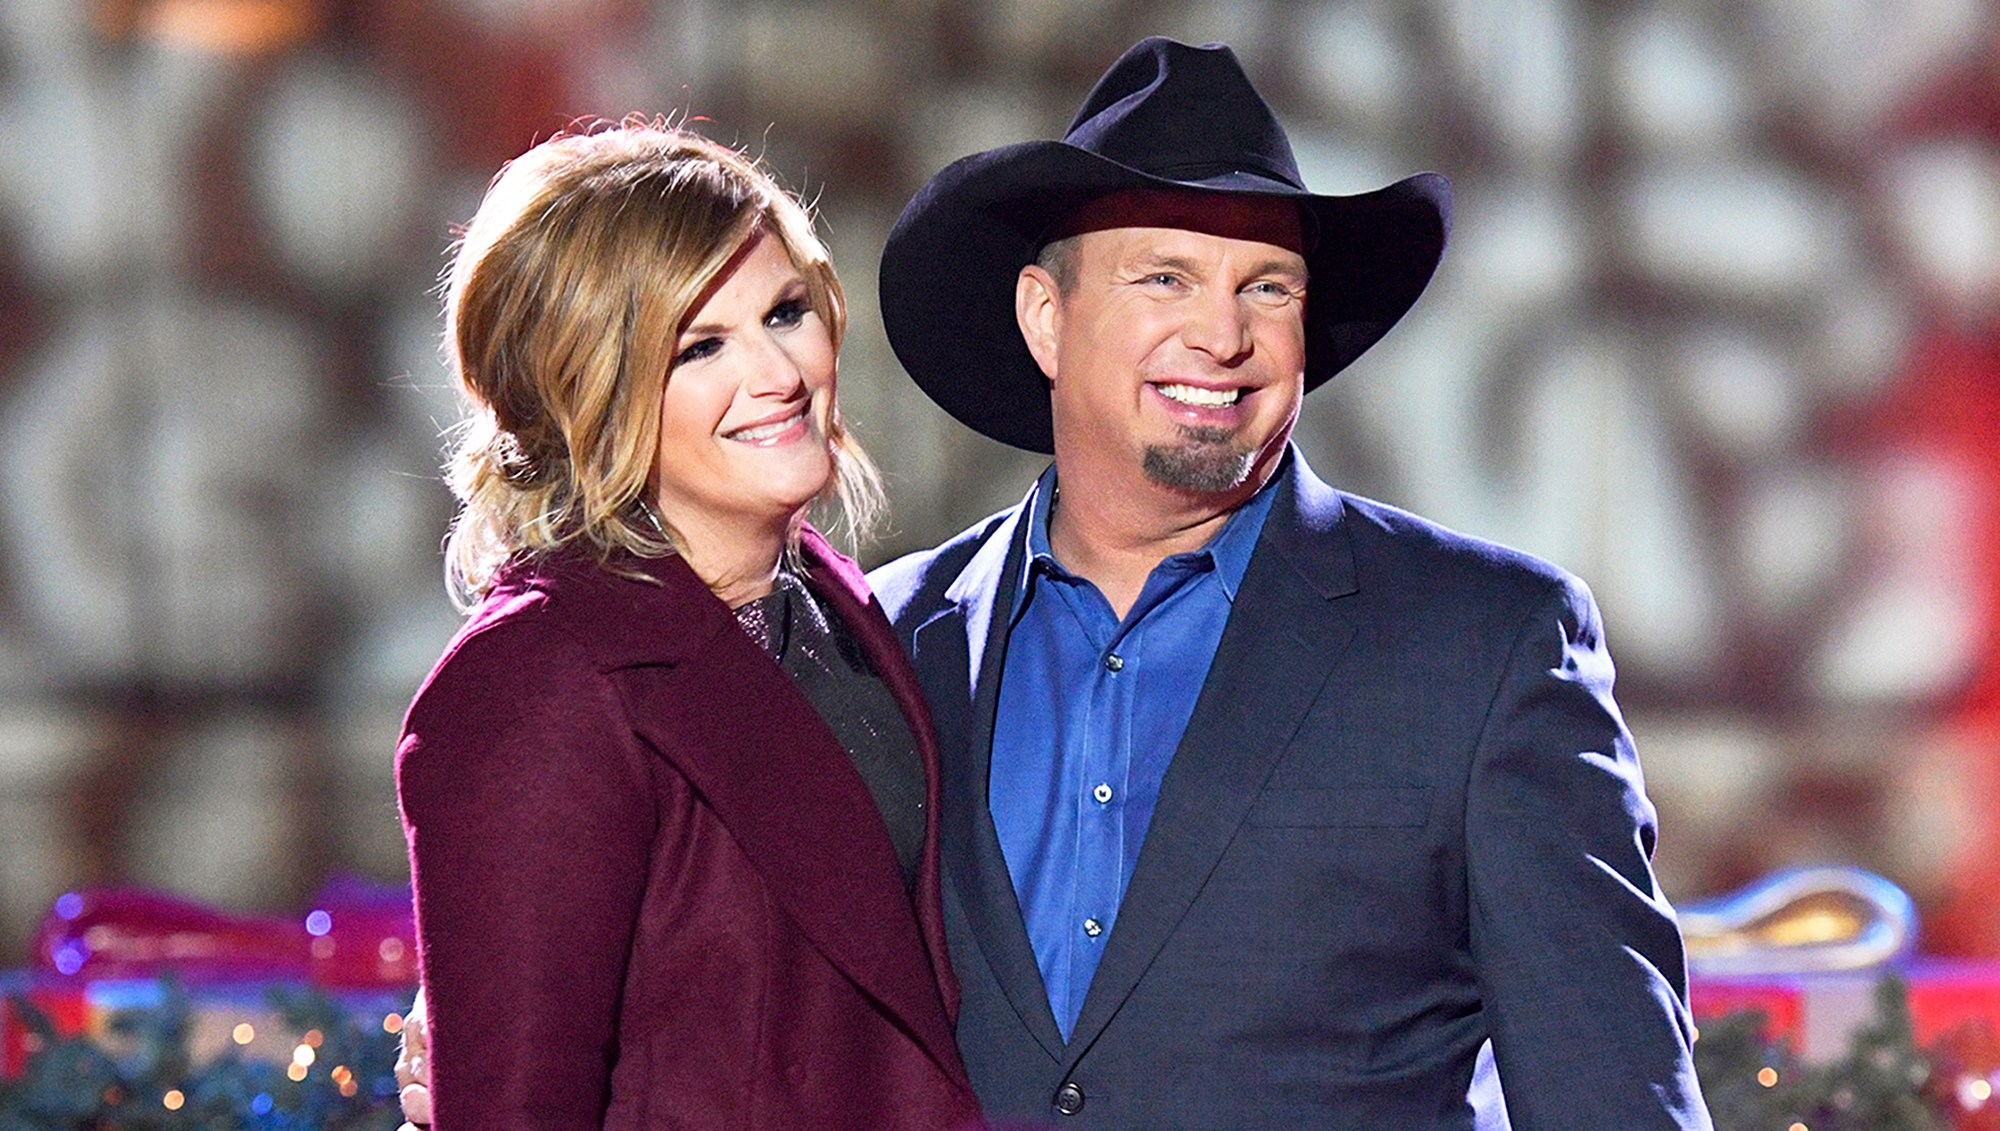 Trisha Yearwood and Garth Brooks attend the 2016 Christmas at Rockefeller Center in New York City.